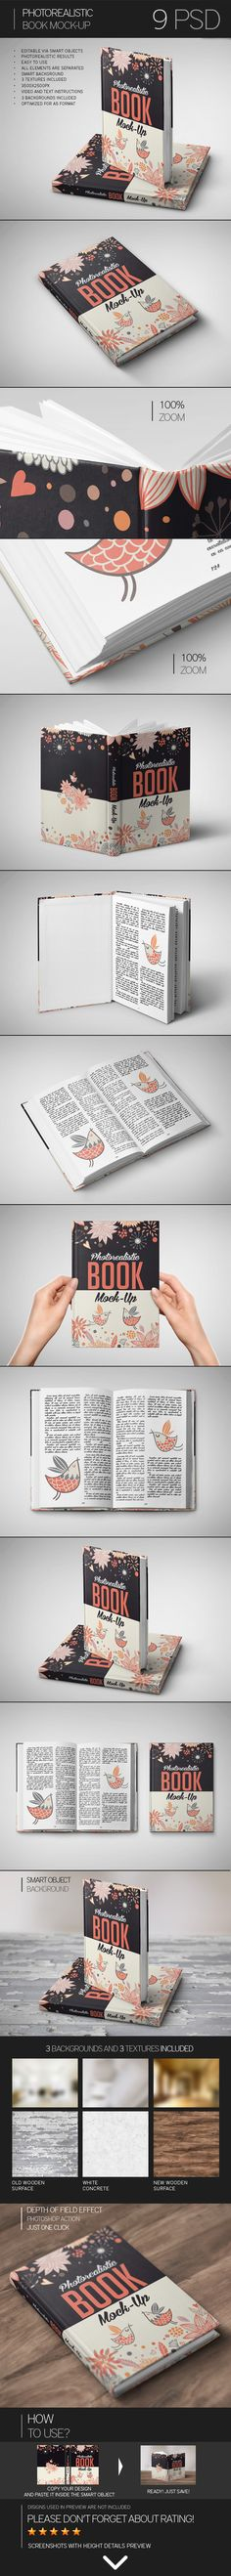 Photorealistic Book Mock-Up by Eugene Smith, via Behance